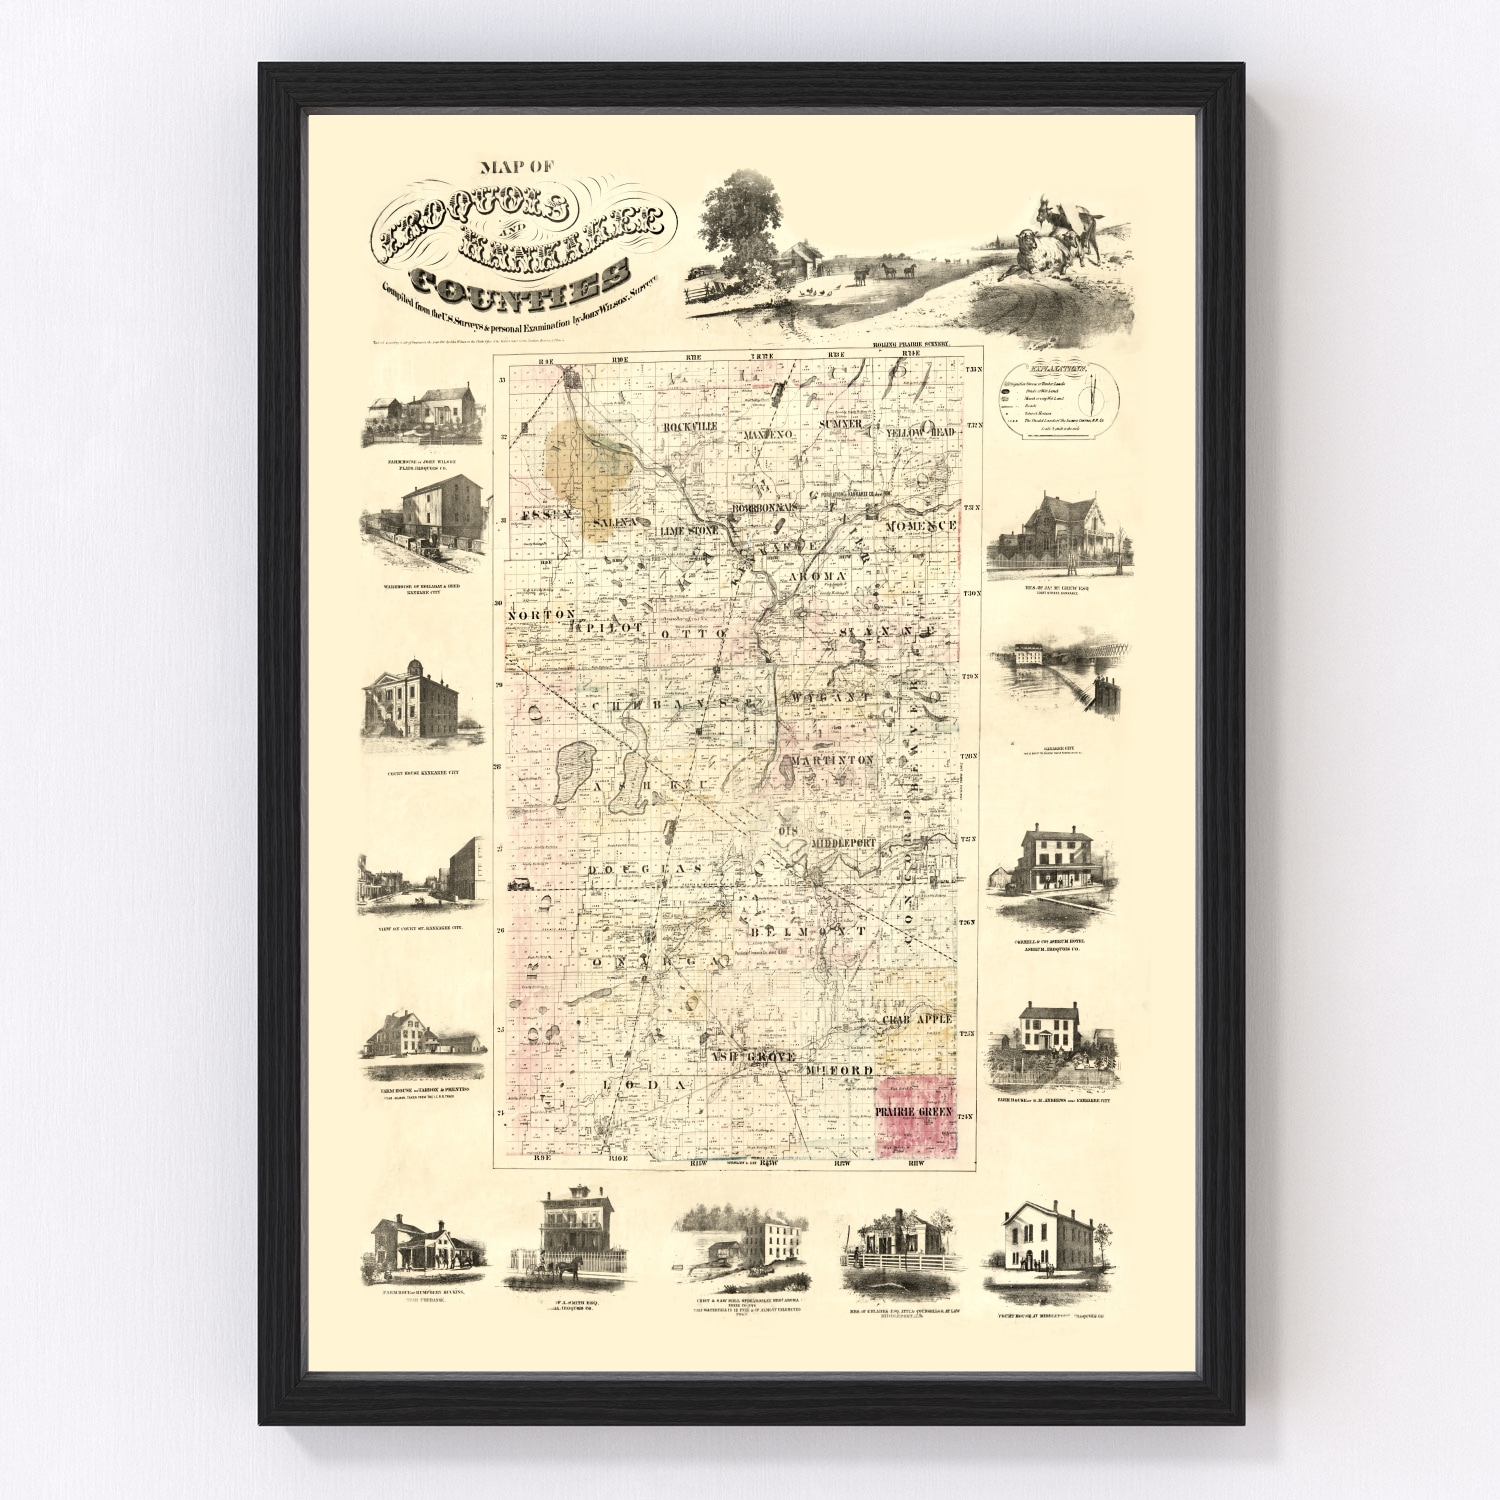 Vintage Map of Iroquois County, Illinois 1860